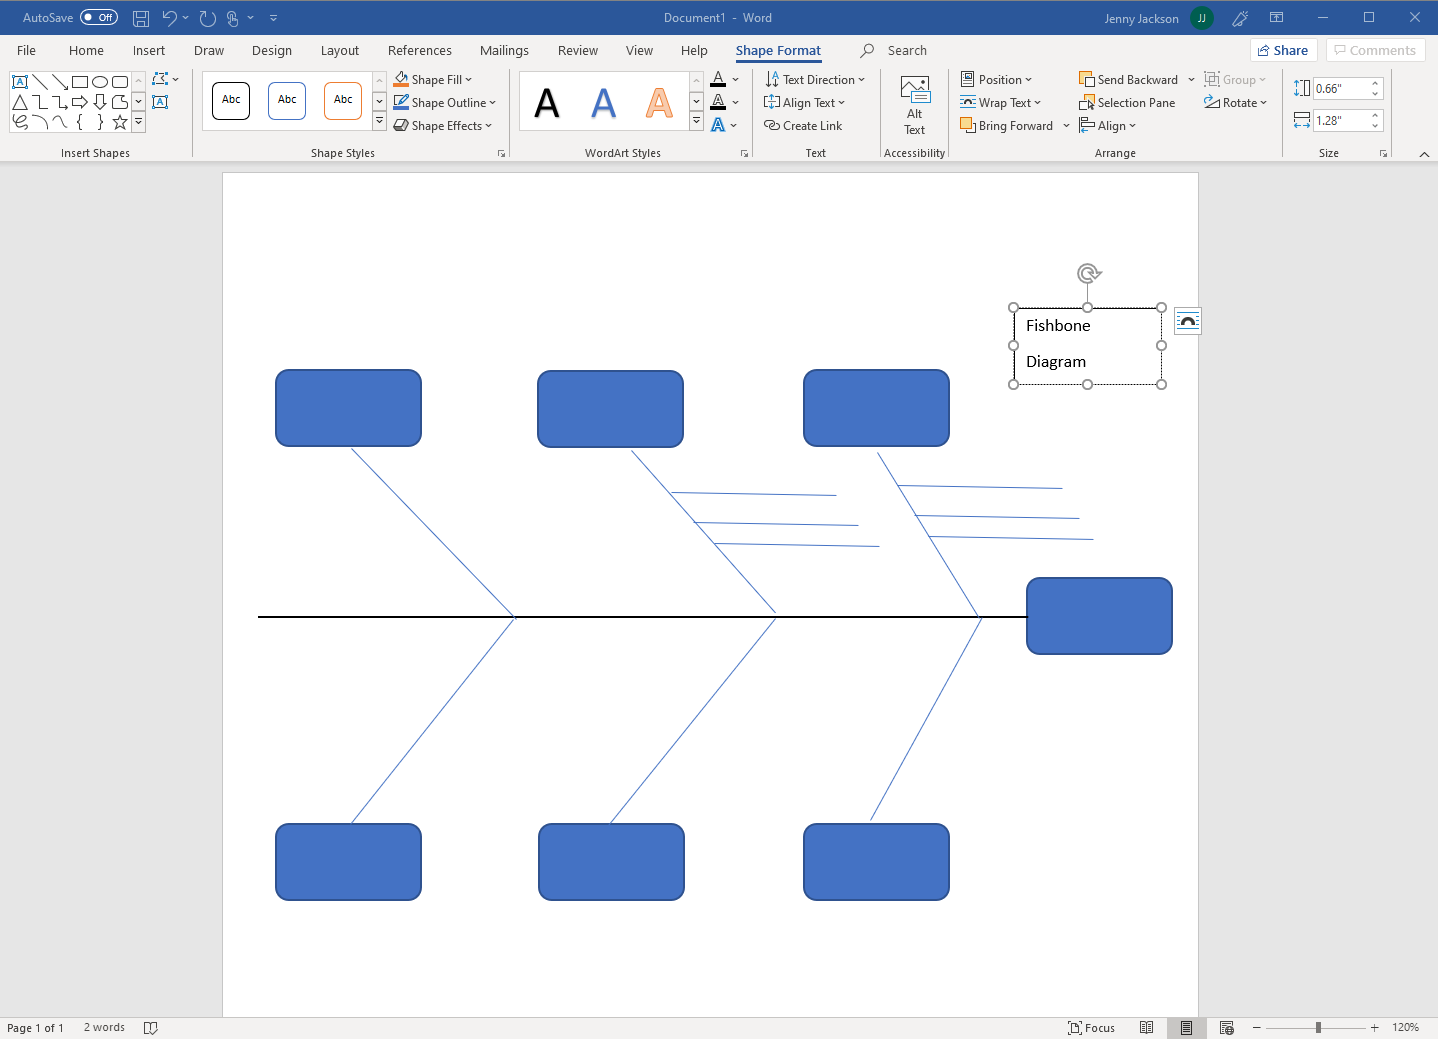 fishbone diagram created in Word